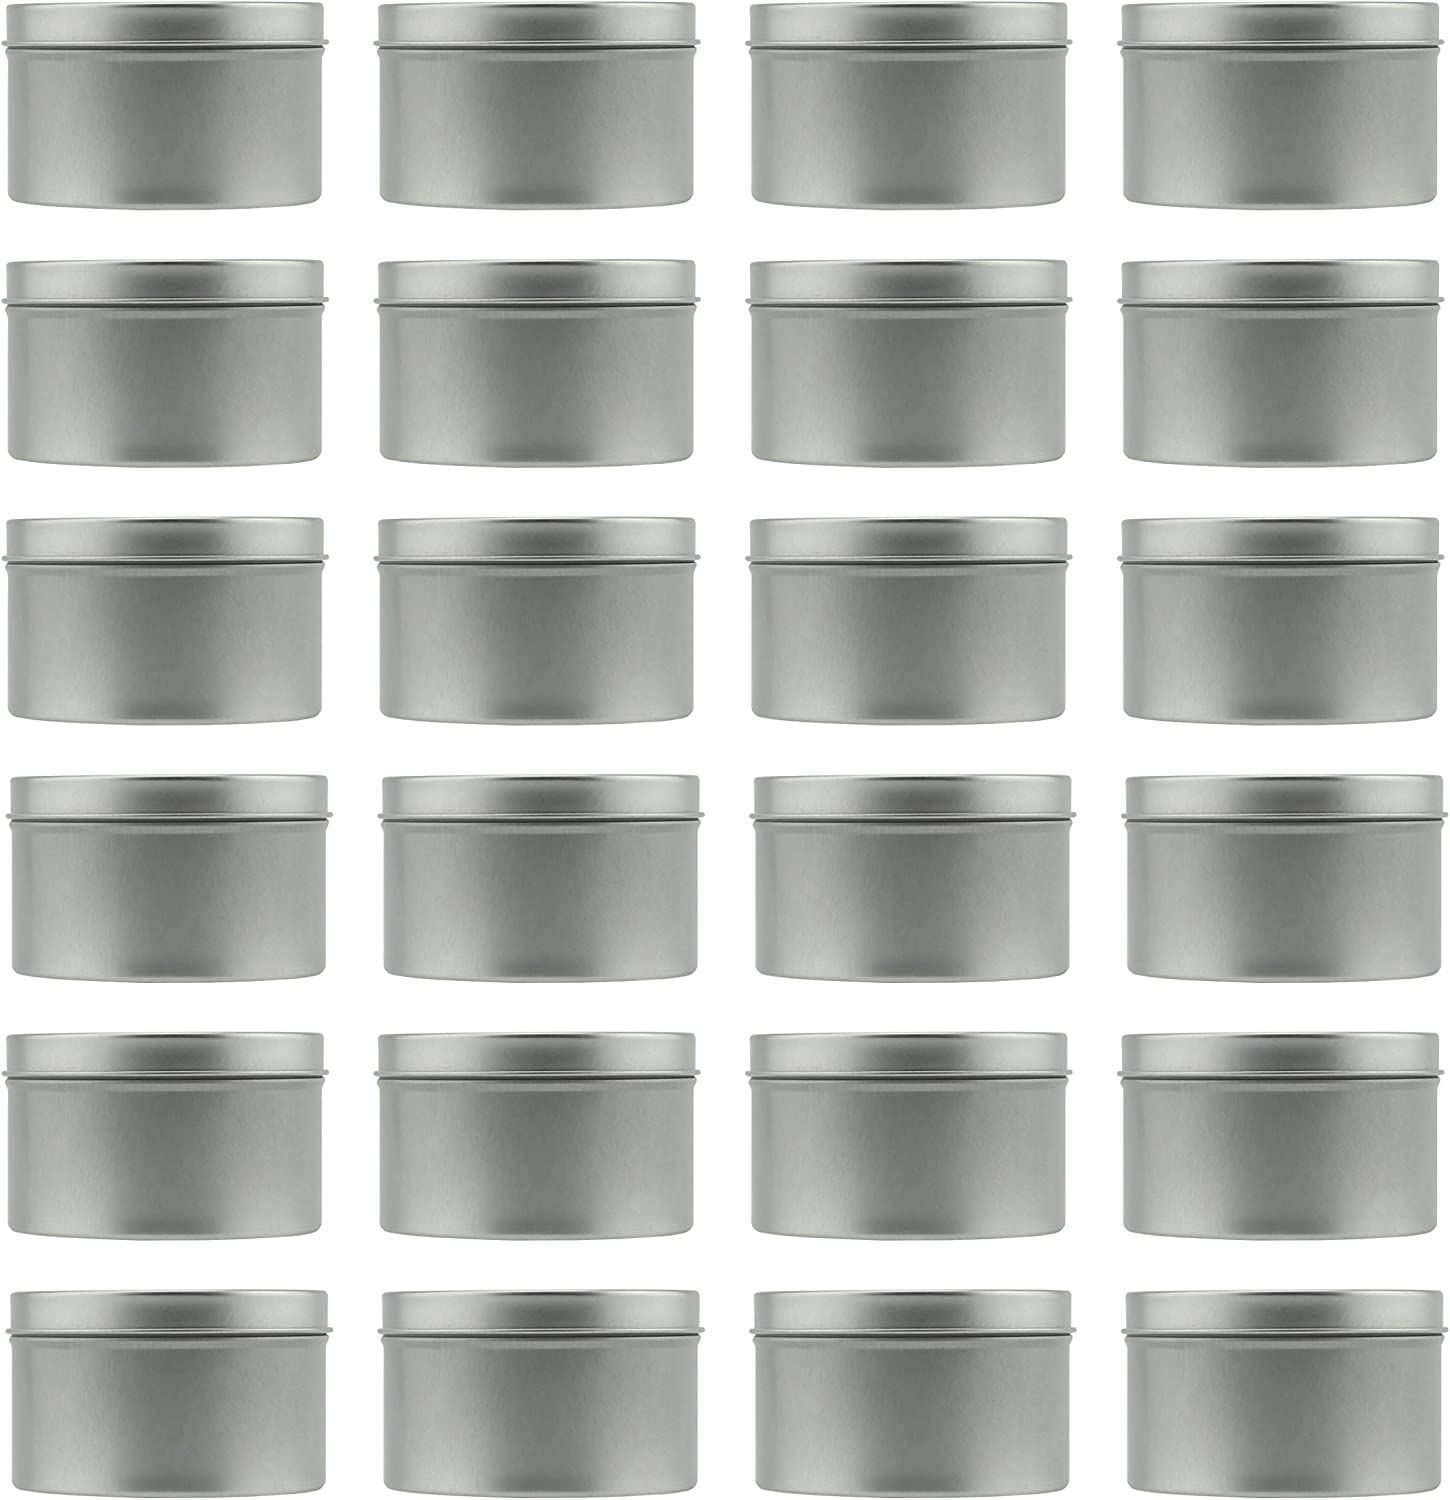 8-Ounce Metal Candle Tins (24-Pack); Round Containers For Candles, Arts & Crafts, Storage & More, Bulk Quantity